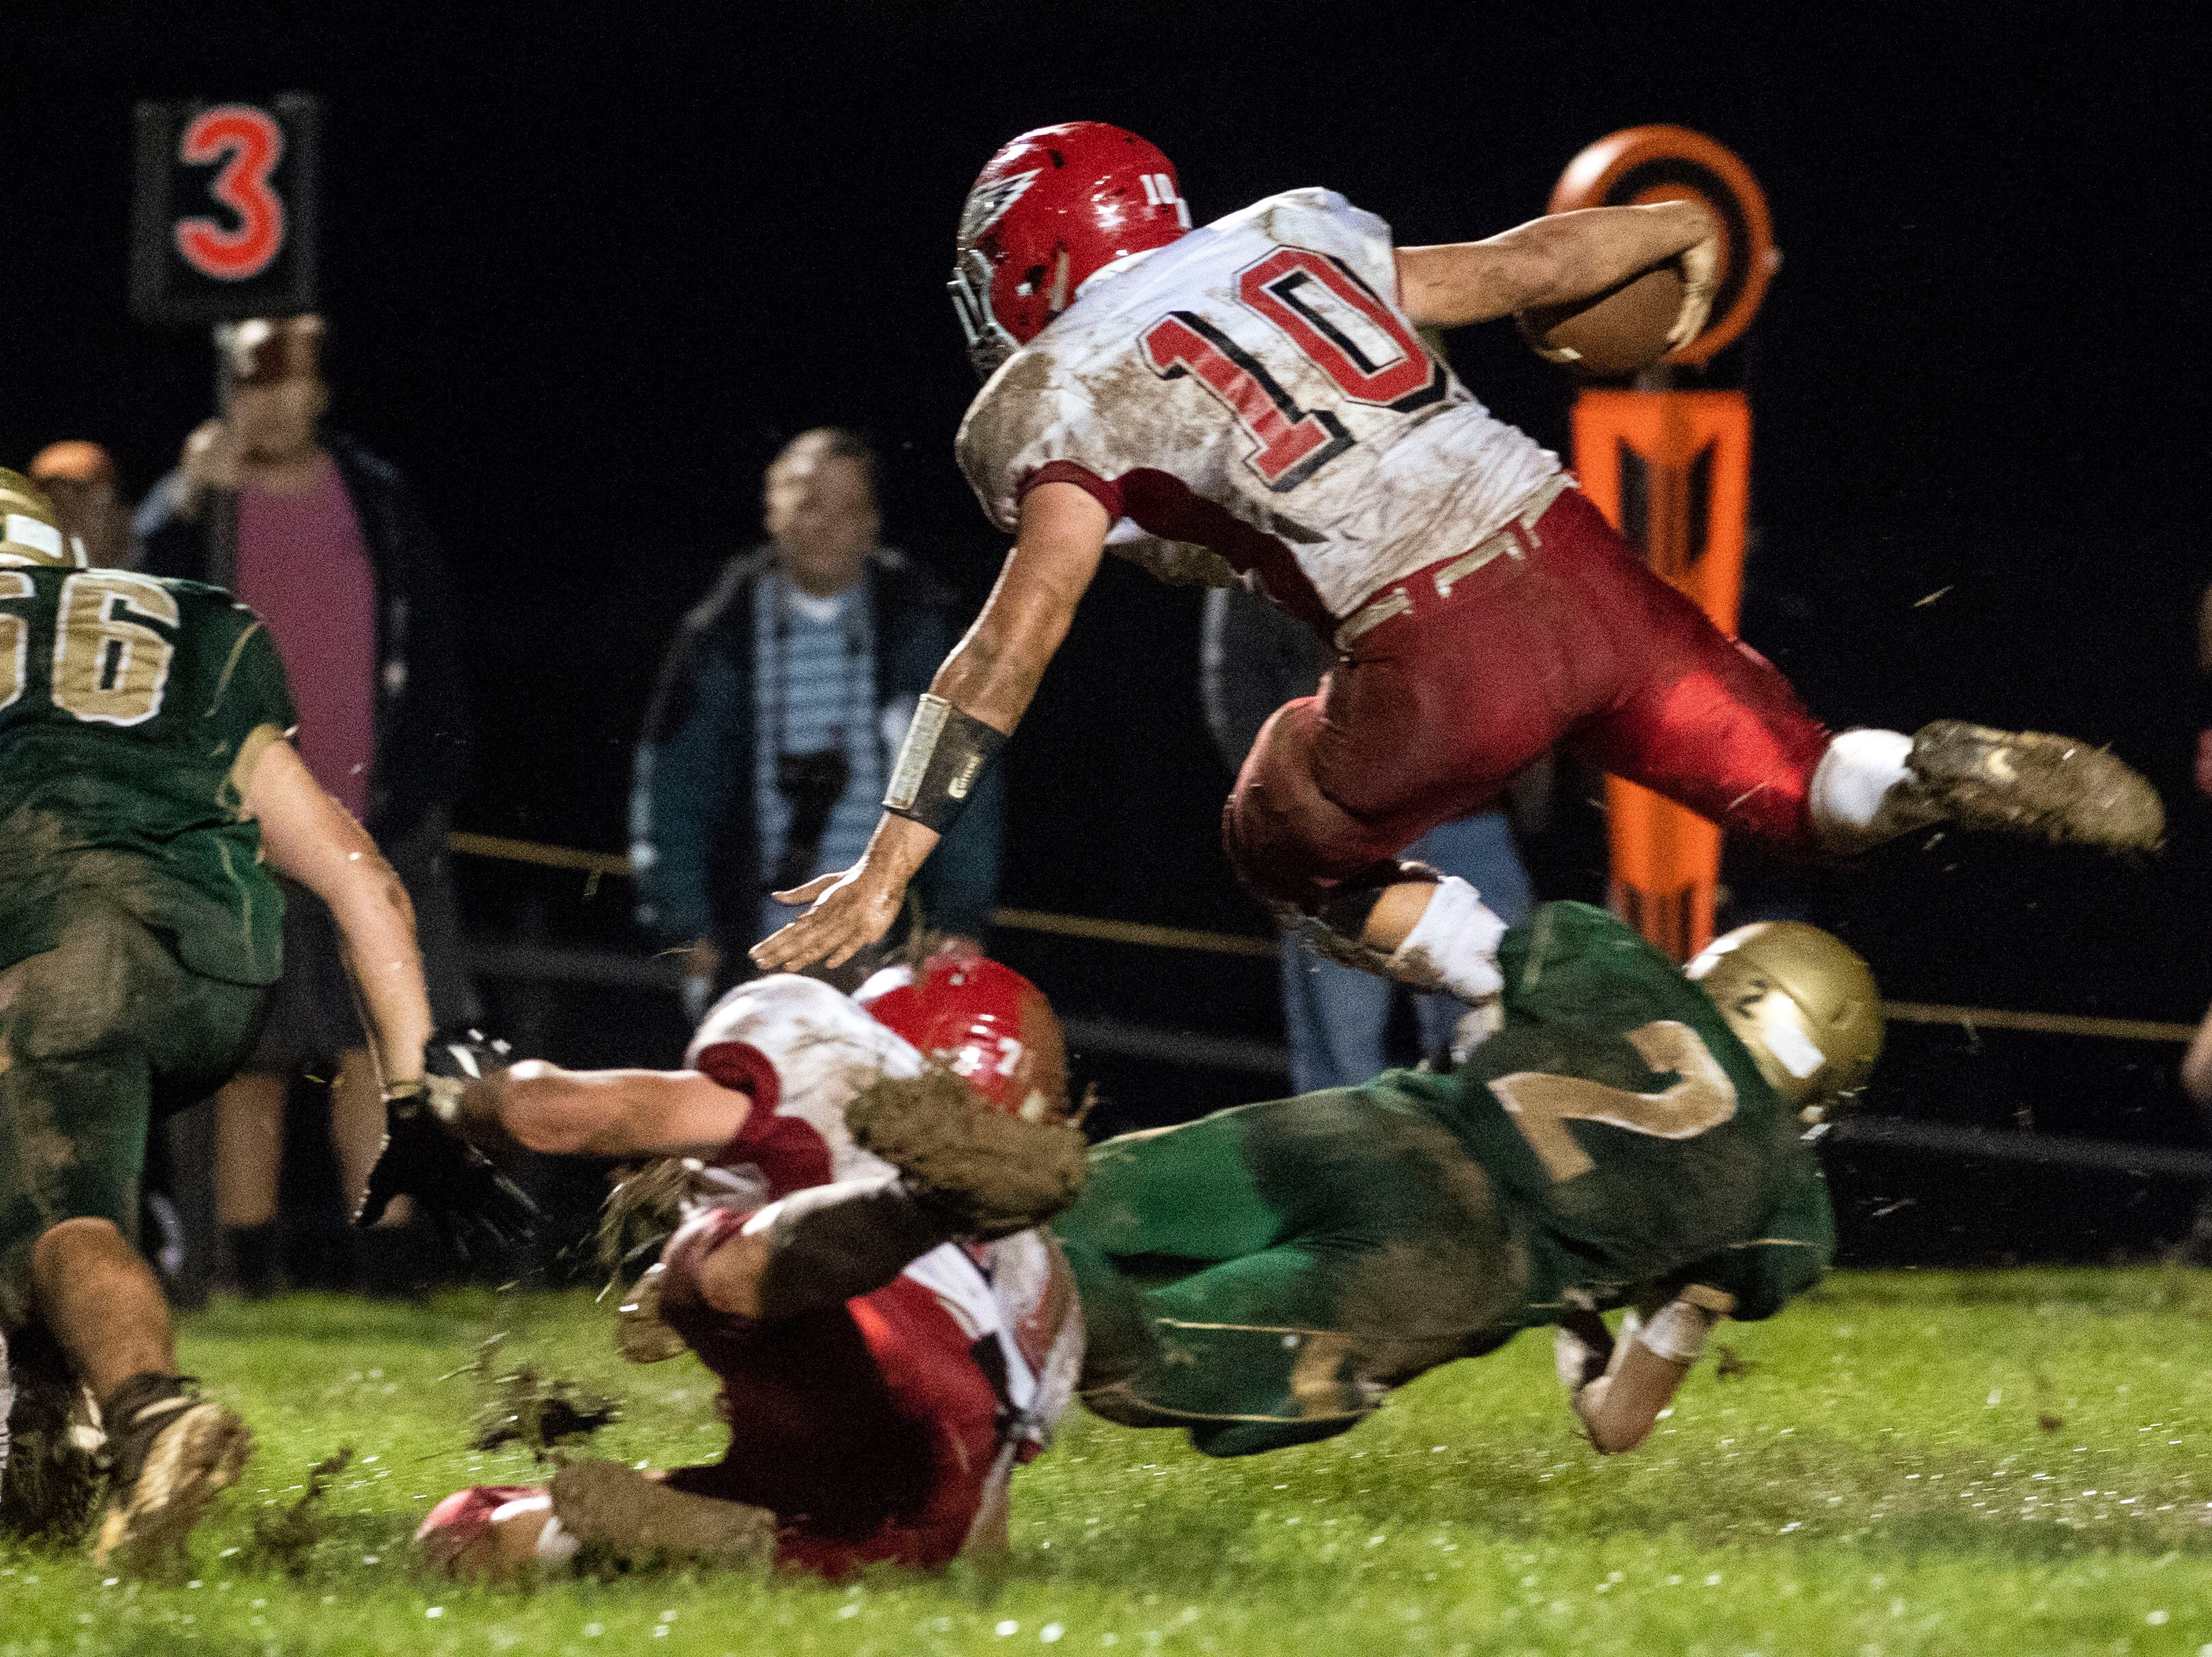 Bermudian quarterback Chase Dull (10) gets tackled mid jump by York Catholic's Massimo Antolick (2) during a Division III football game on September 28, 2018. York Catholic (6-0) beat the Bermudian Springs Eagles (4-2) 10-7, during the Fighting Irish's homecoming.